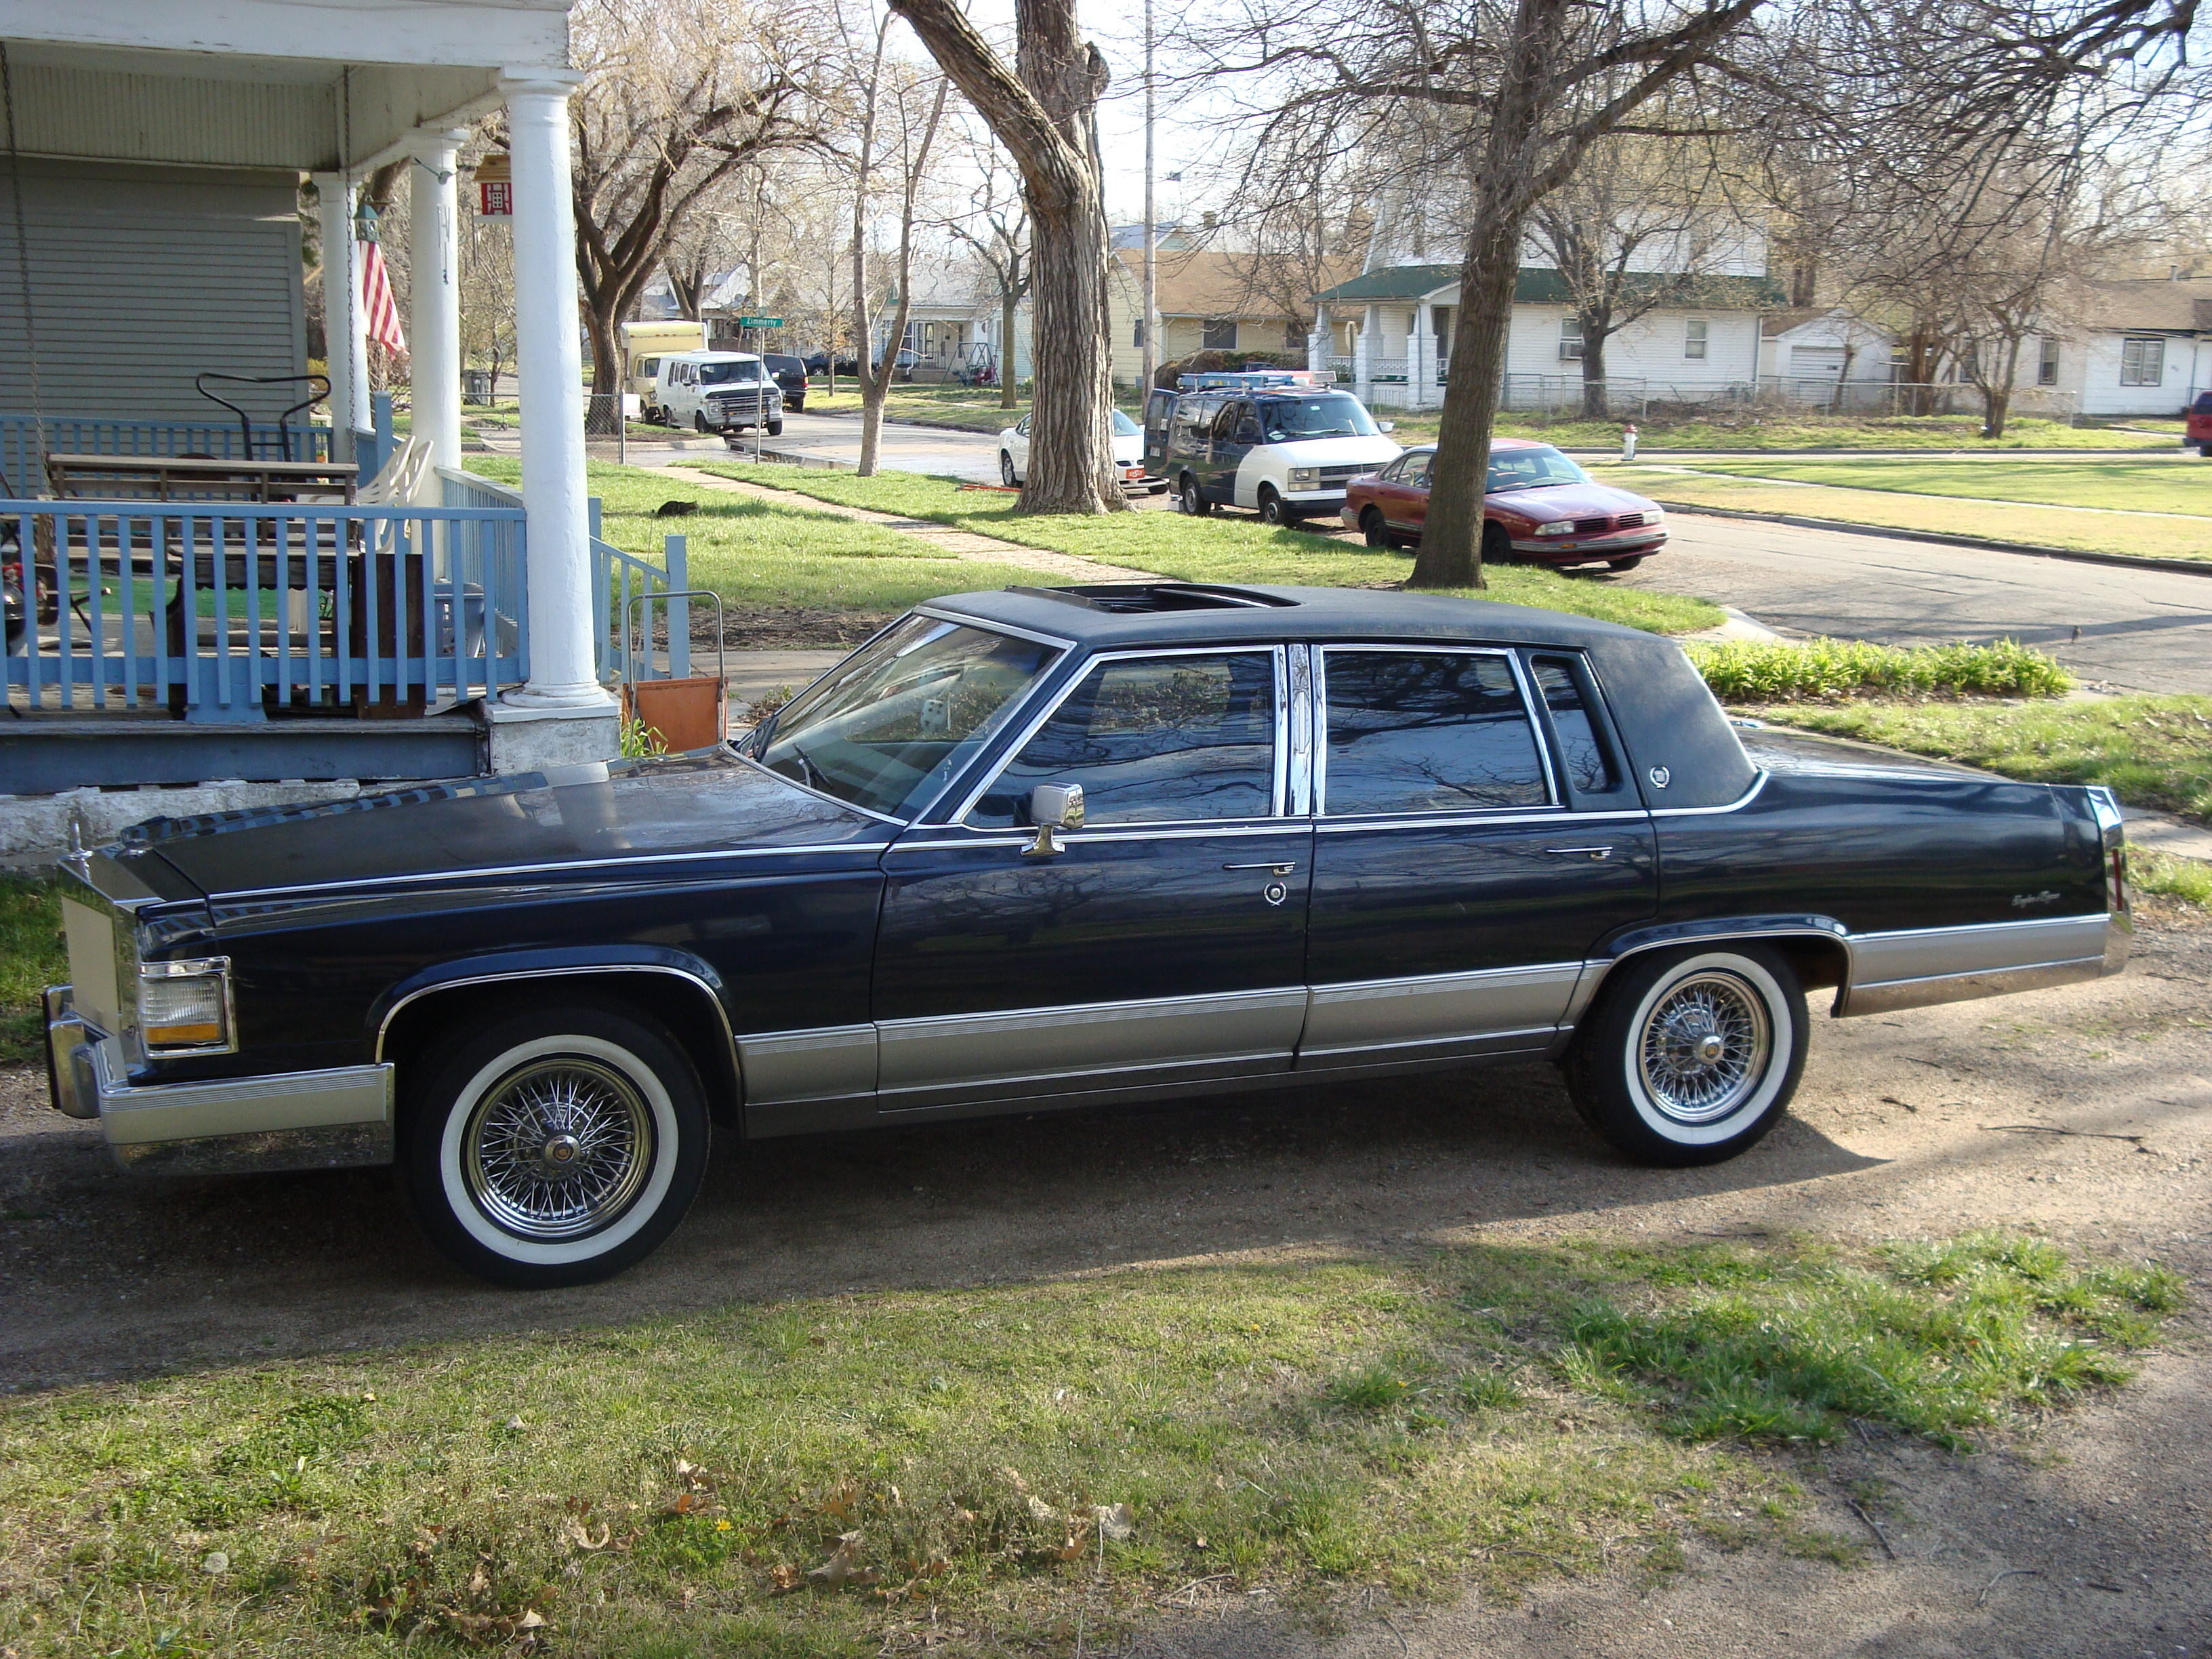 cadillac fleetwood mr lac dipr s 1990 cadillac fleetwood brougham. Cars Review. Best American Auto & Cars Review